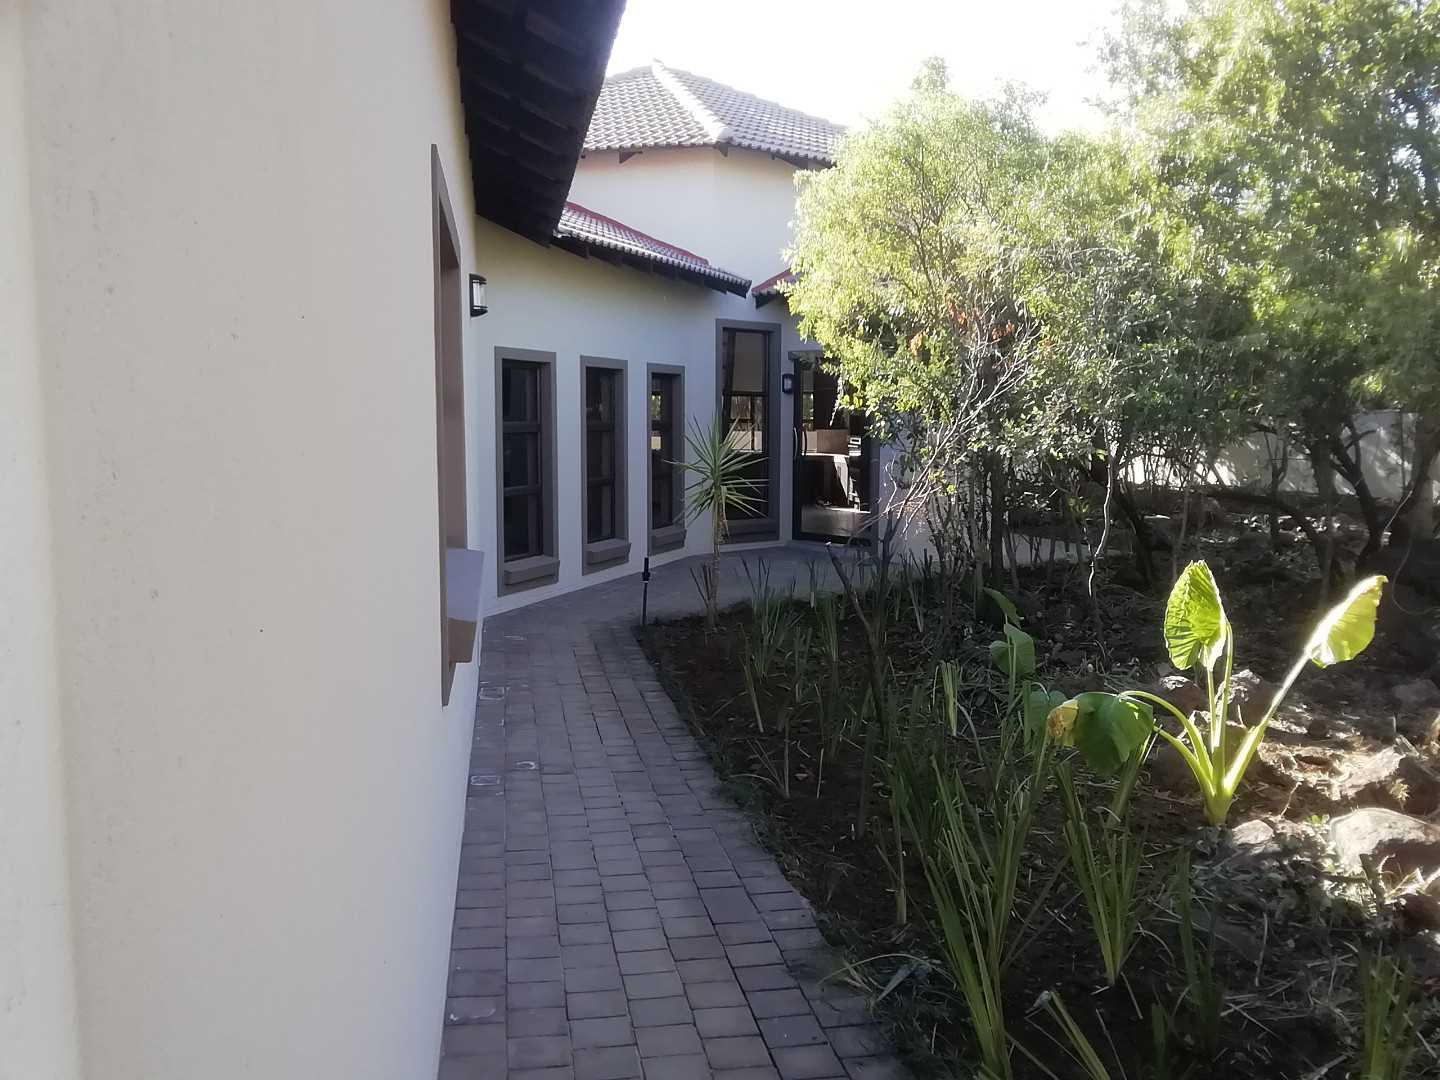 Side of house and garden